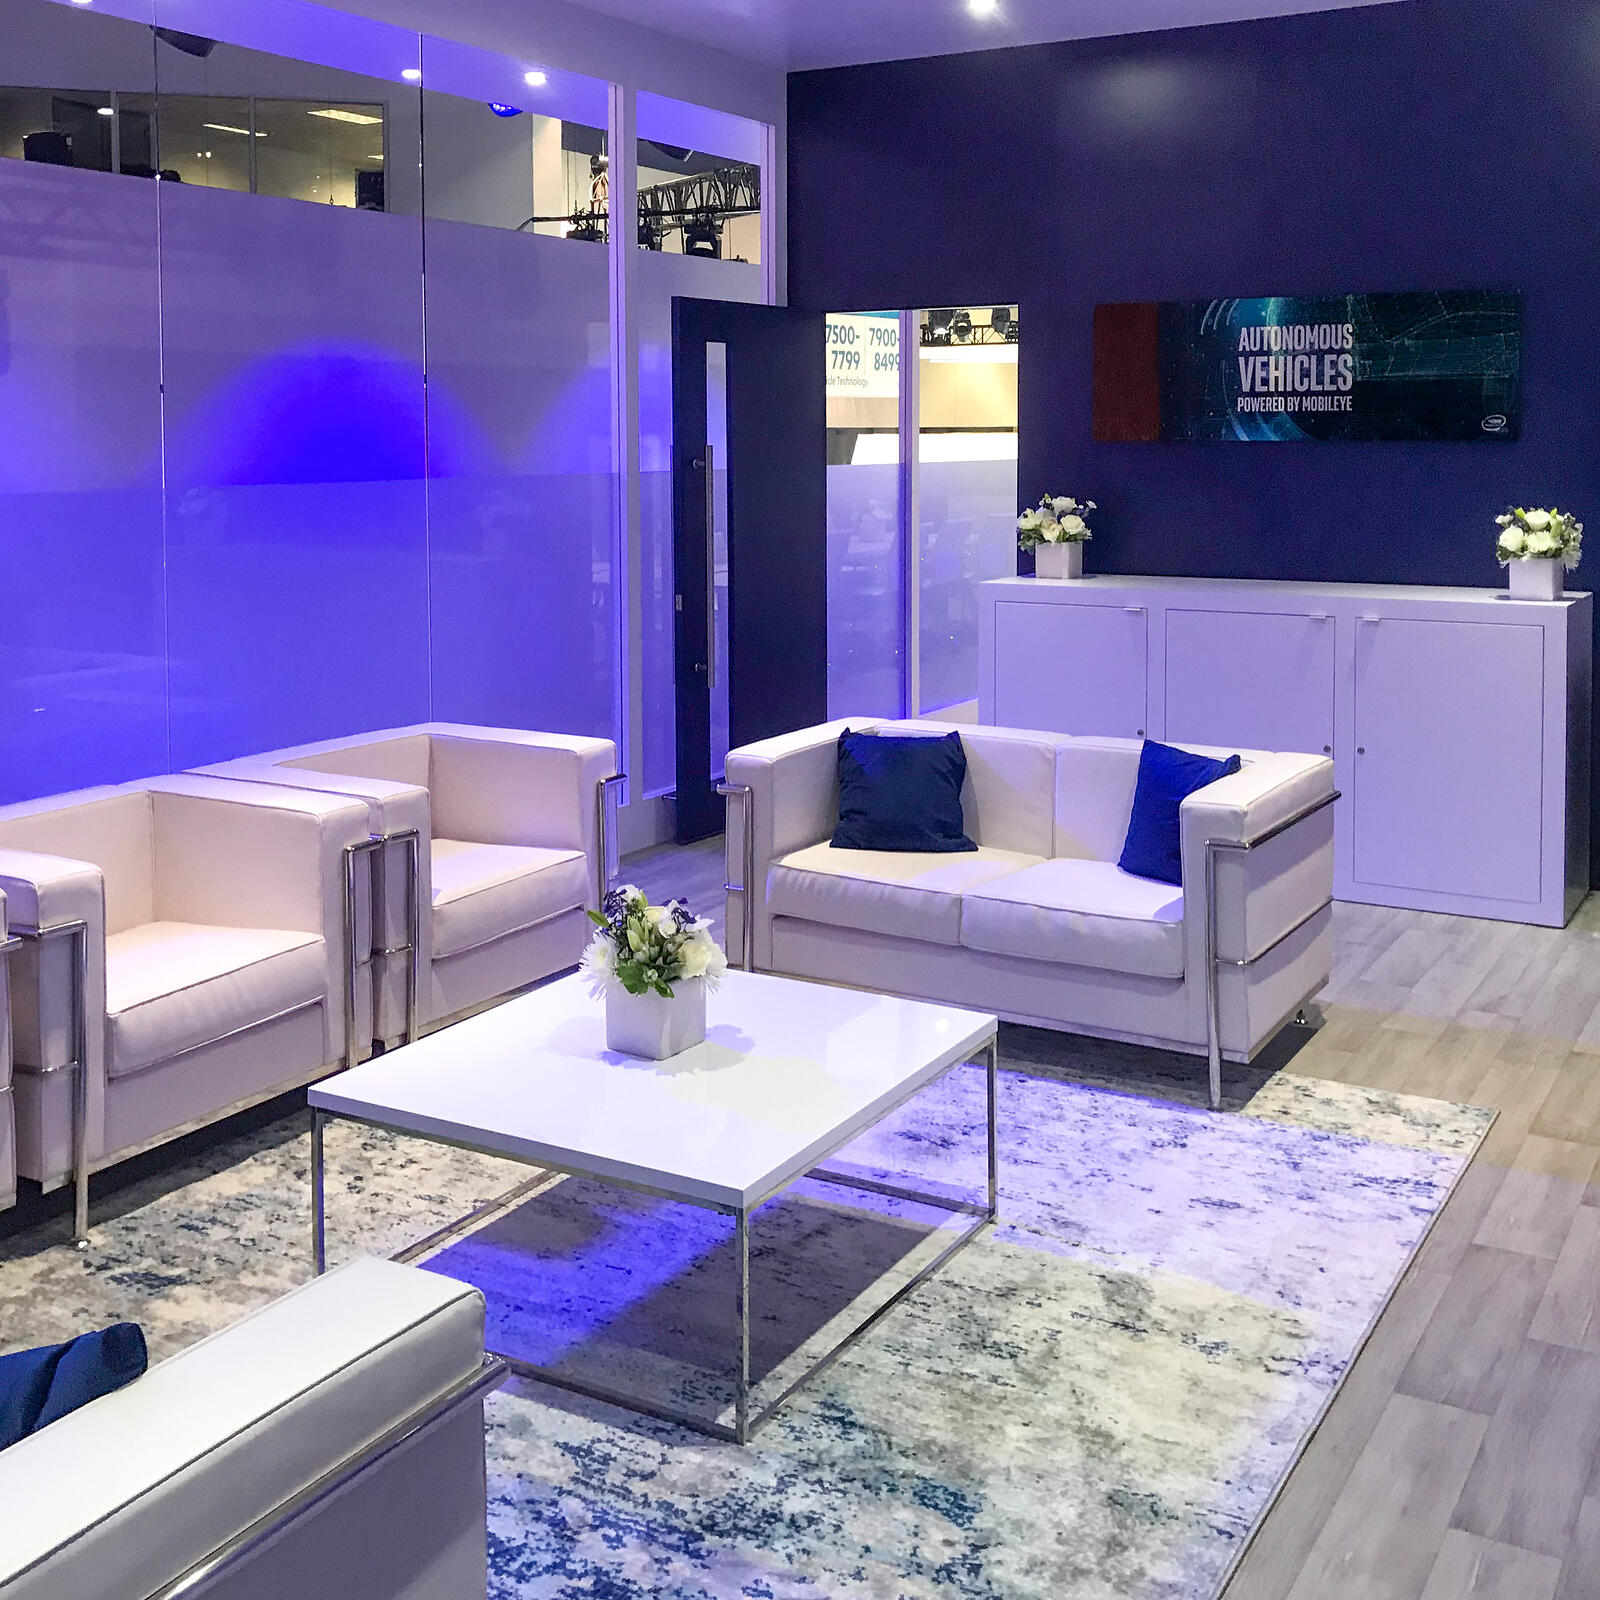 luxurious meeting room with white sofas at mobileyes trade show booth ces 2020